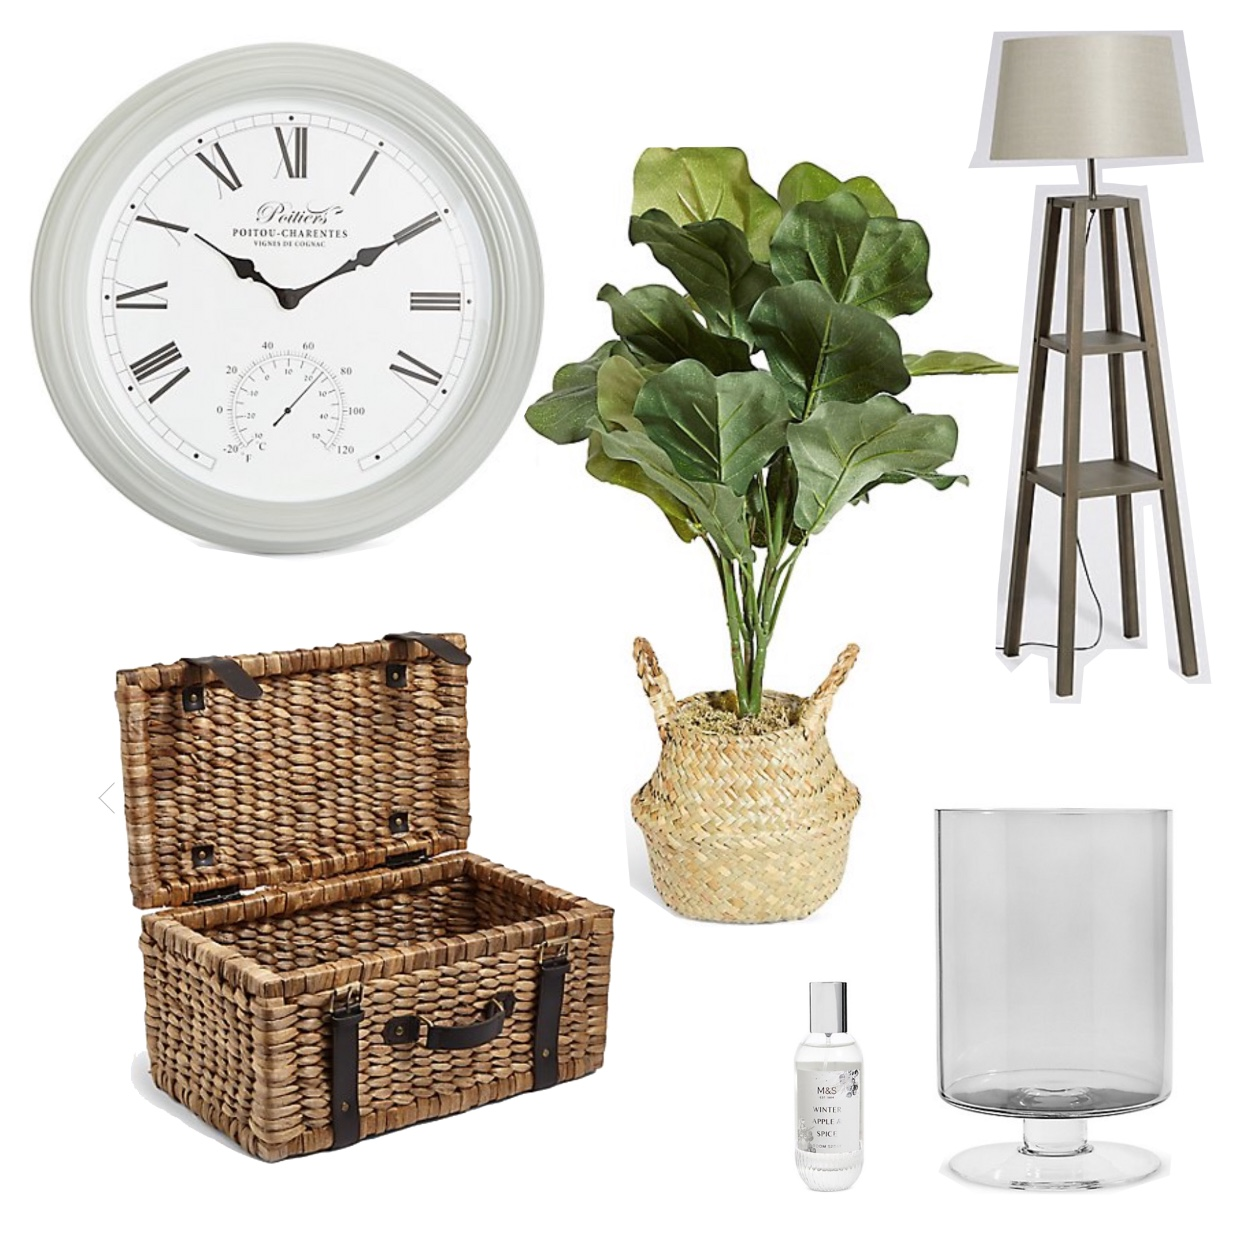 my midlife fashion, marks and spencer, marks and spencer homeware, marks and spencer large footed hurricane, marks and spencer water hyacinth suitcase storage box, marks and spencer medium fiddle leaf fig tree, marks and spencer large poitier wall clock, marks and spencer theo grey wood shelves floor lamp